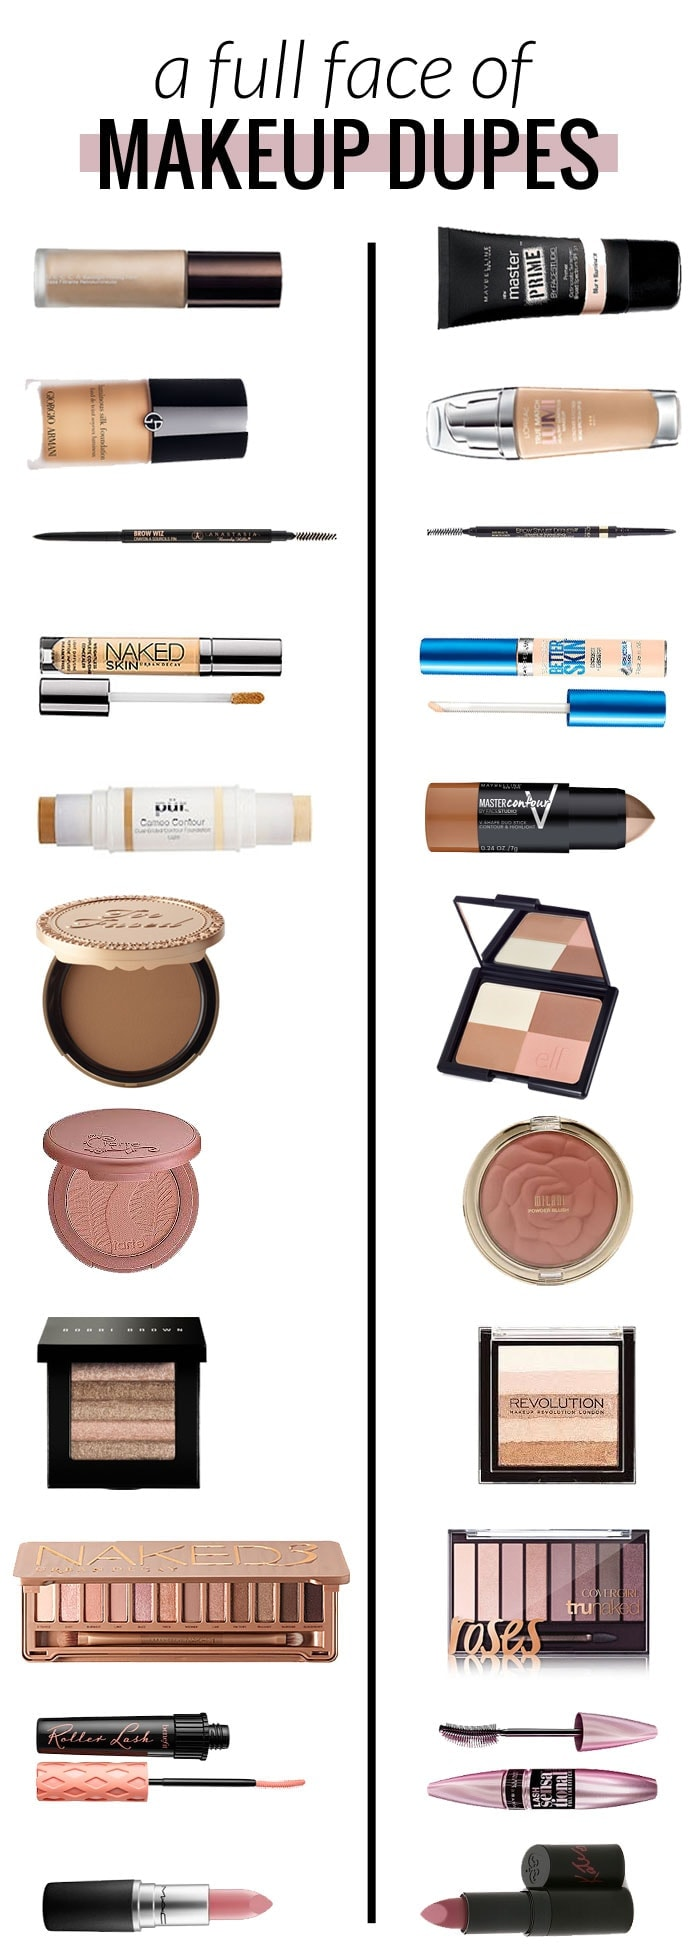 Beauty blogger Meg O. on the go features a full face of makeup dupes, with half high end and the other half drugstore. Find out which dupes are the best!